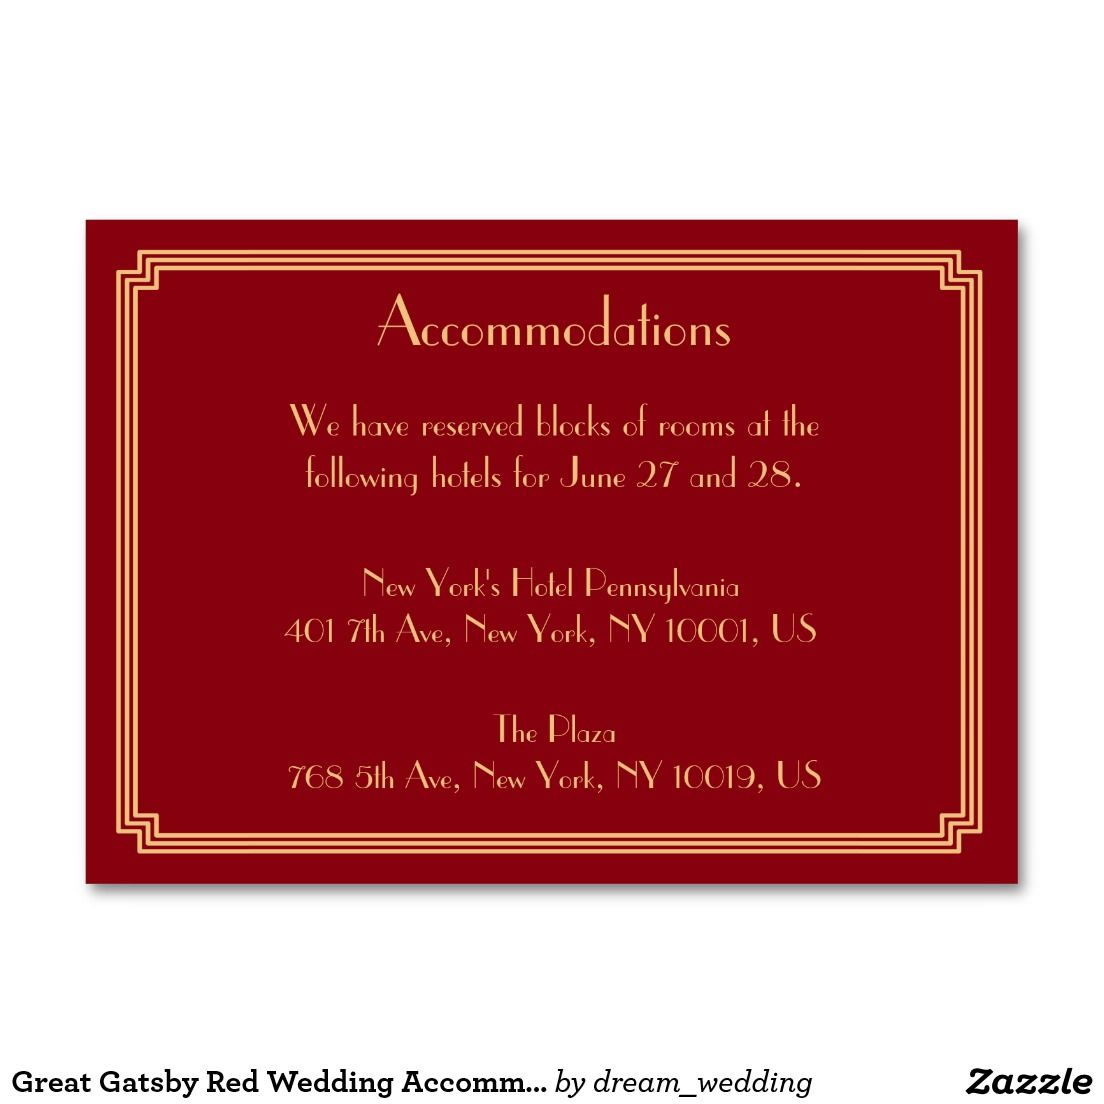 Great Gatsby Red Wedding Accommodation Cards Large Business Card ...